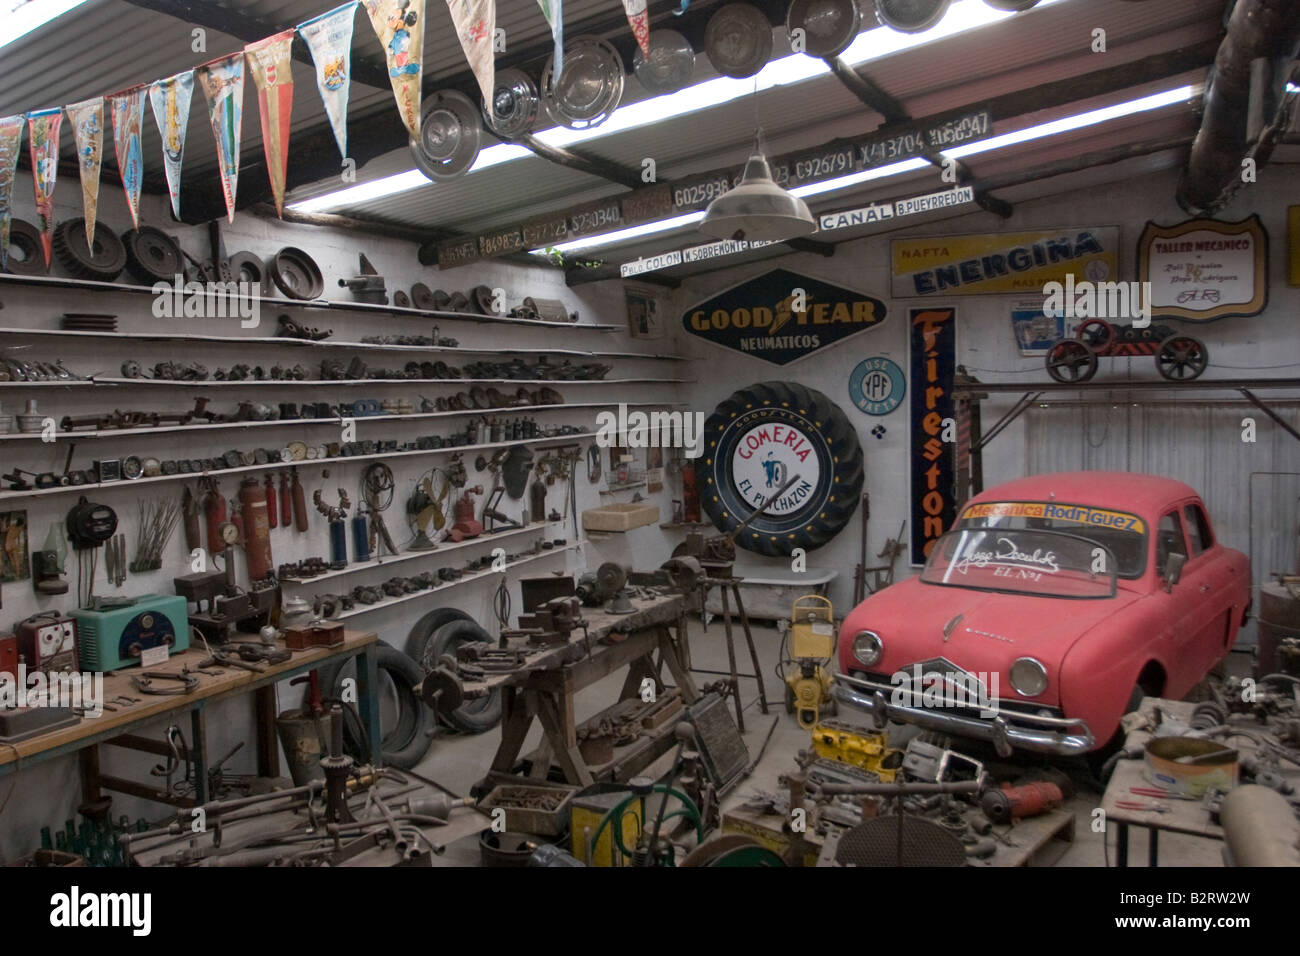 An old car mechanic repair shop exhibited in Rocsen Museum, Nono ...